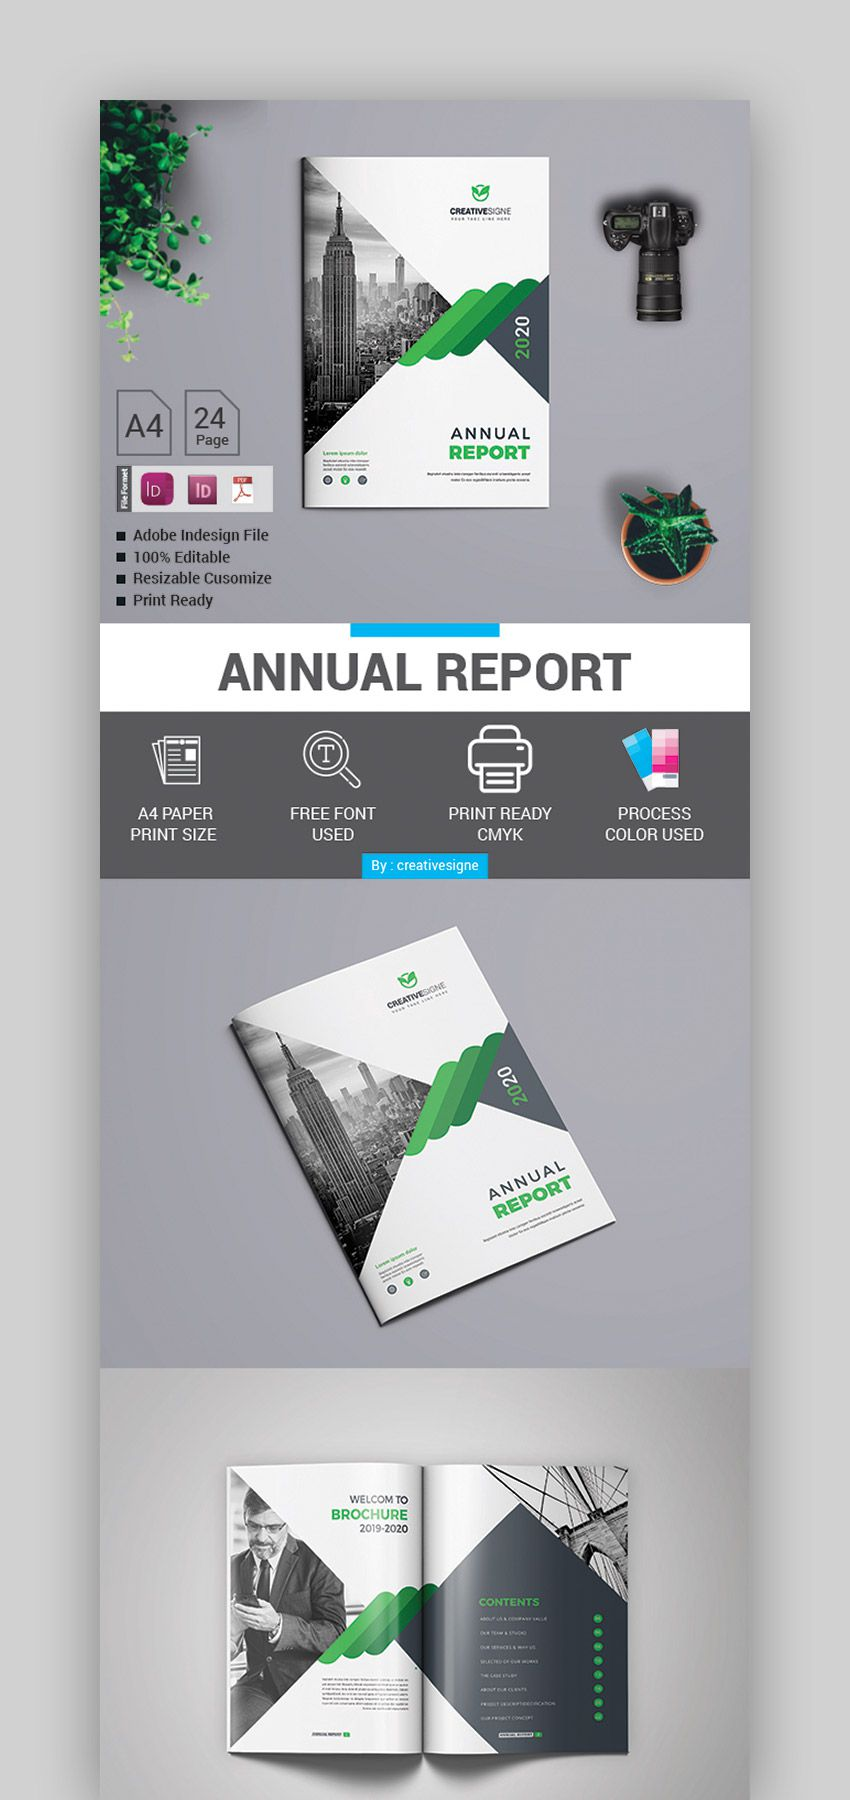 004 Unique Free Indesign Annual Report Template Download Concept Full